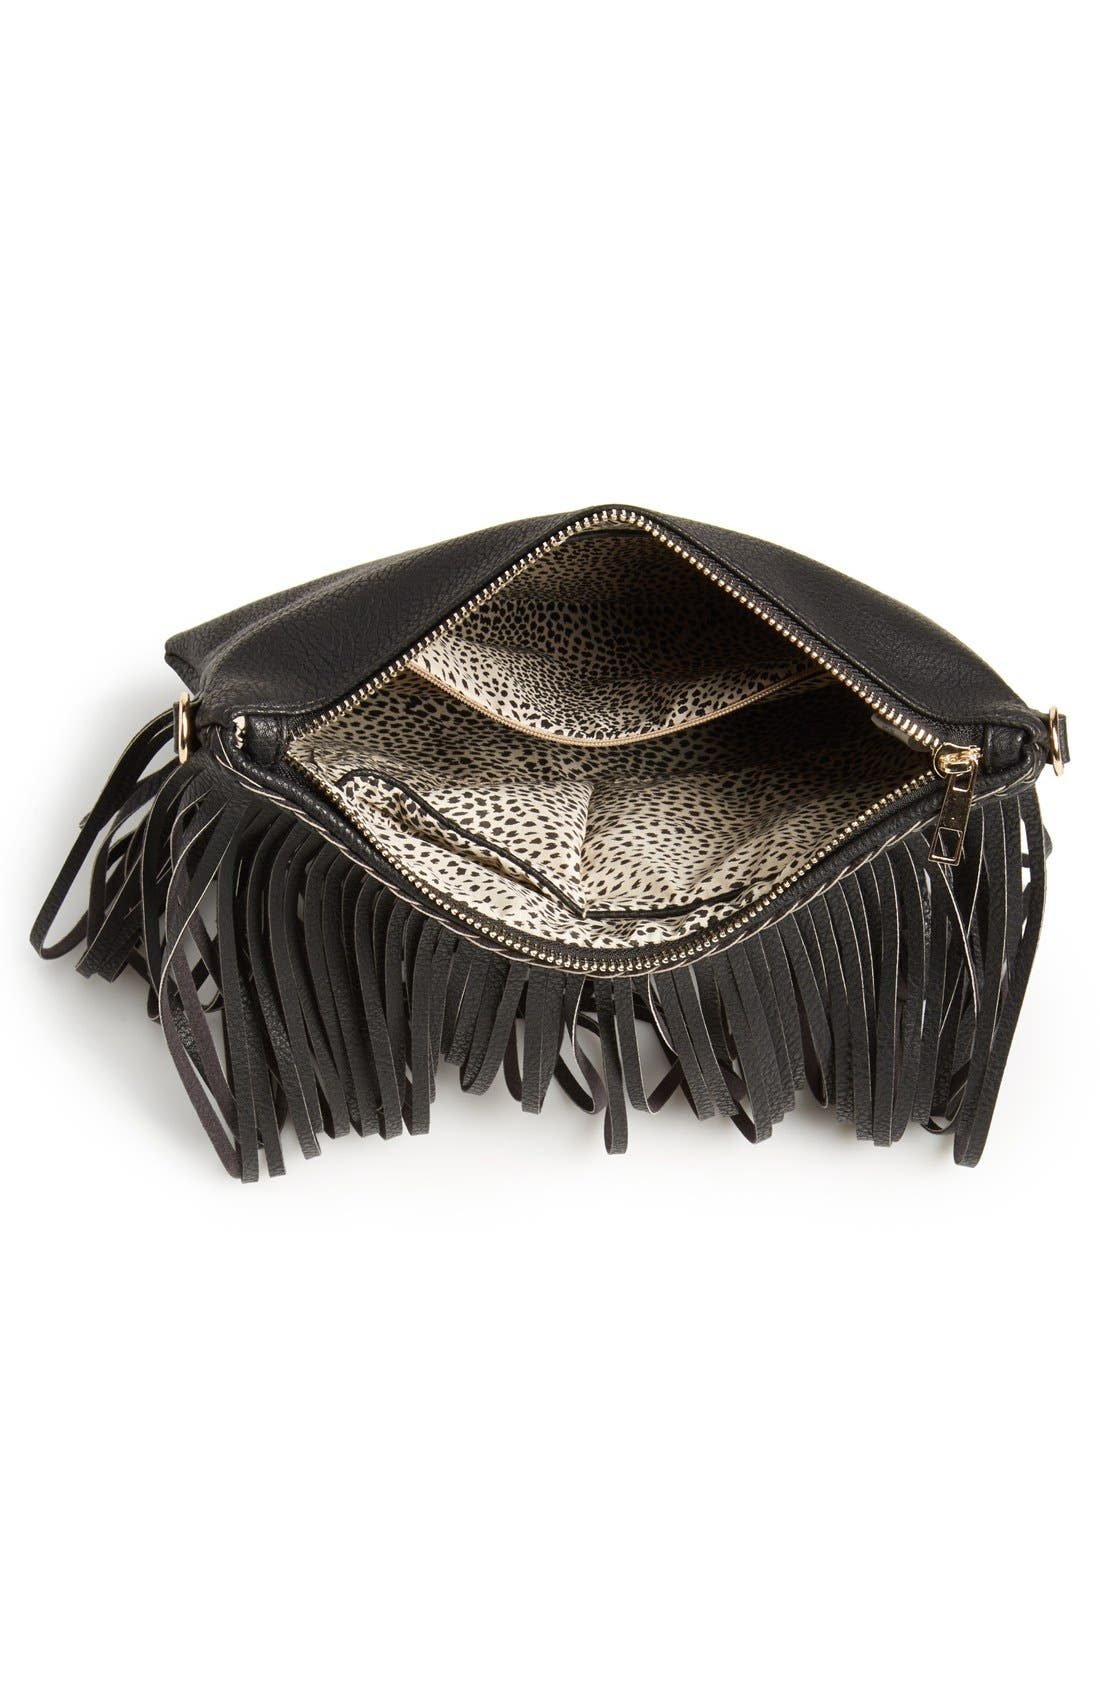 'Rose' Fringe Faux Leather Convertible Crossbody Bag,                             Alternate thumbnail 4, color,                             001